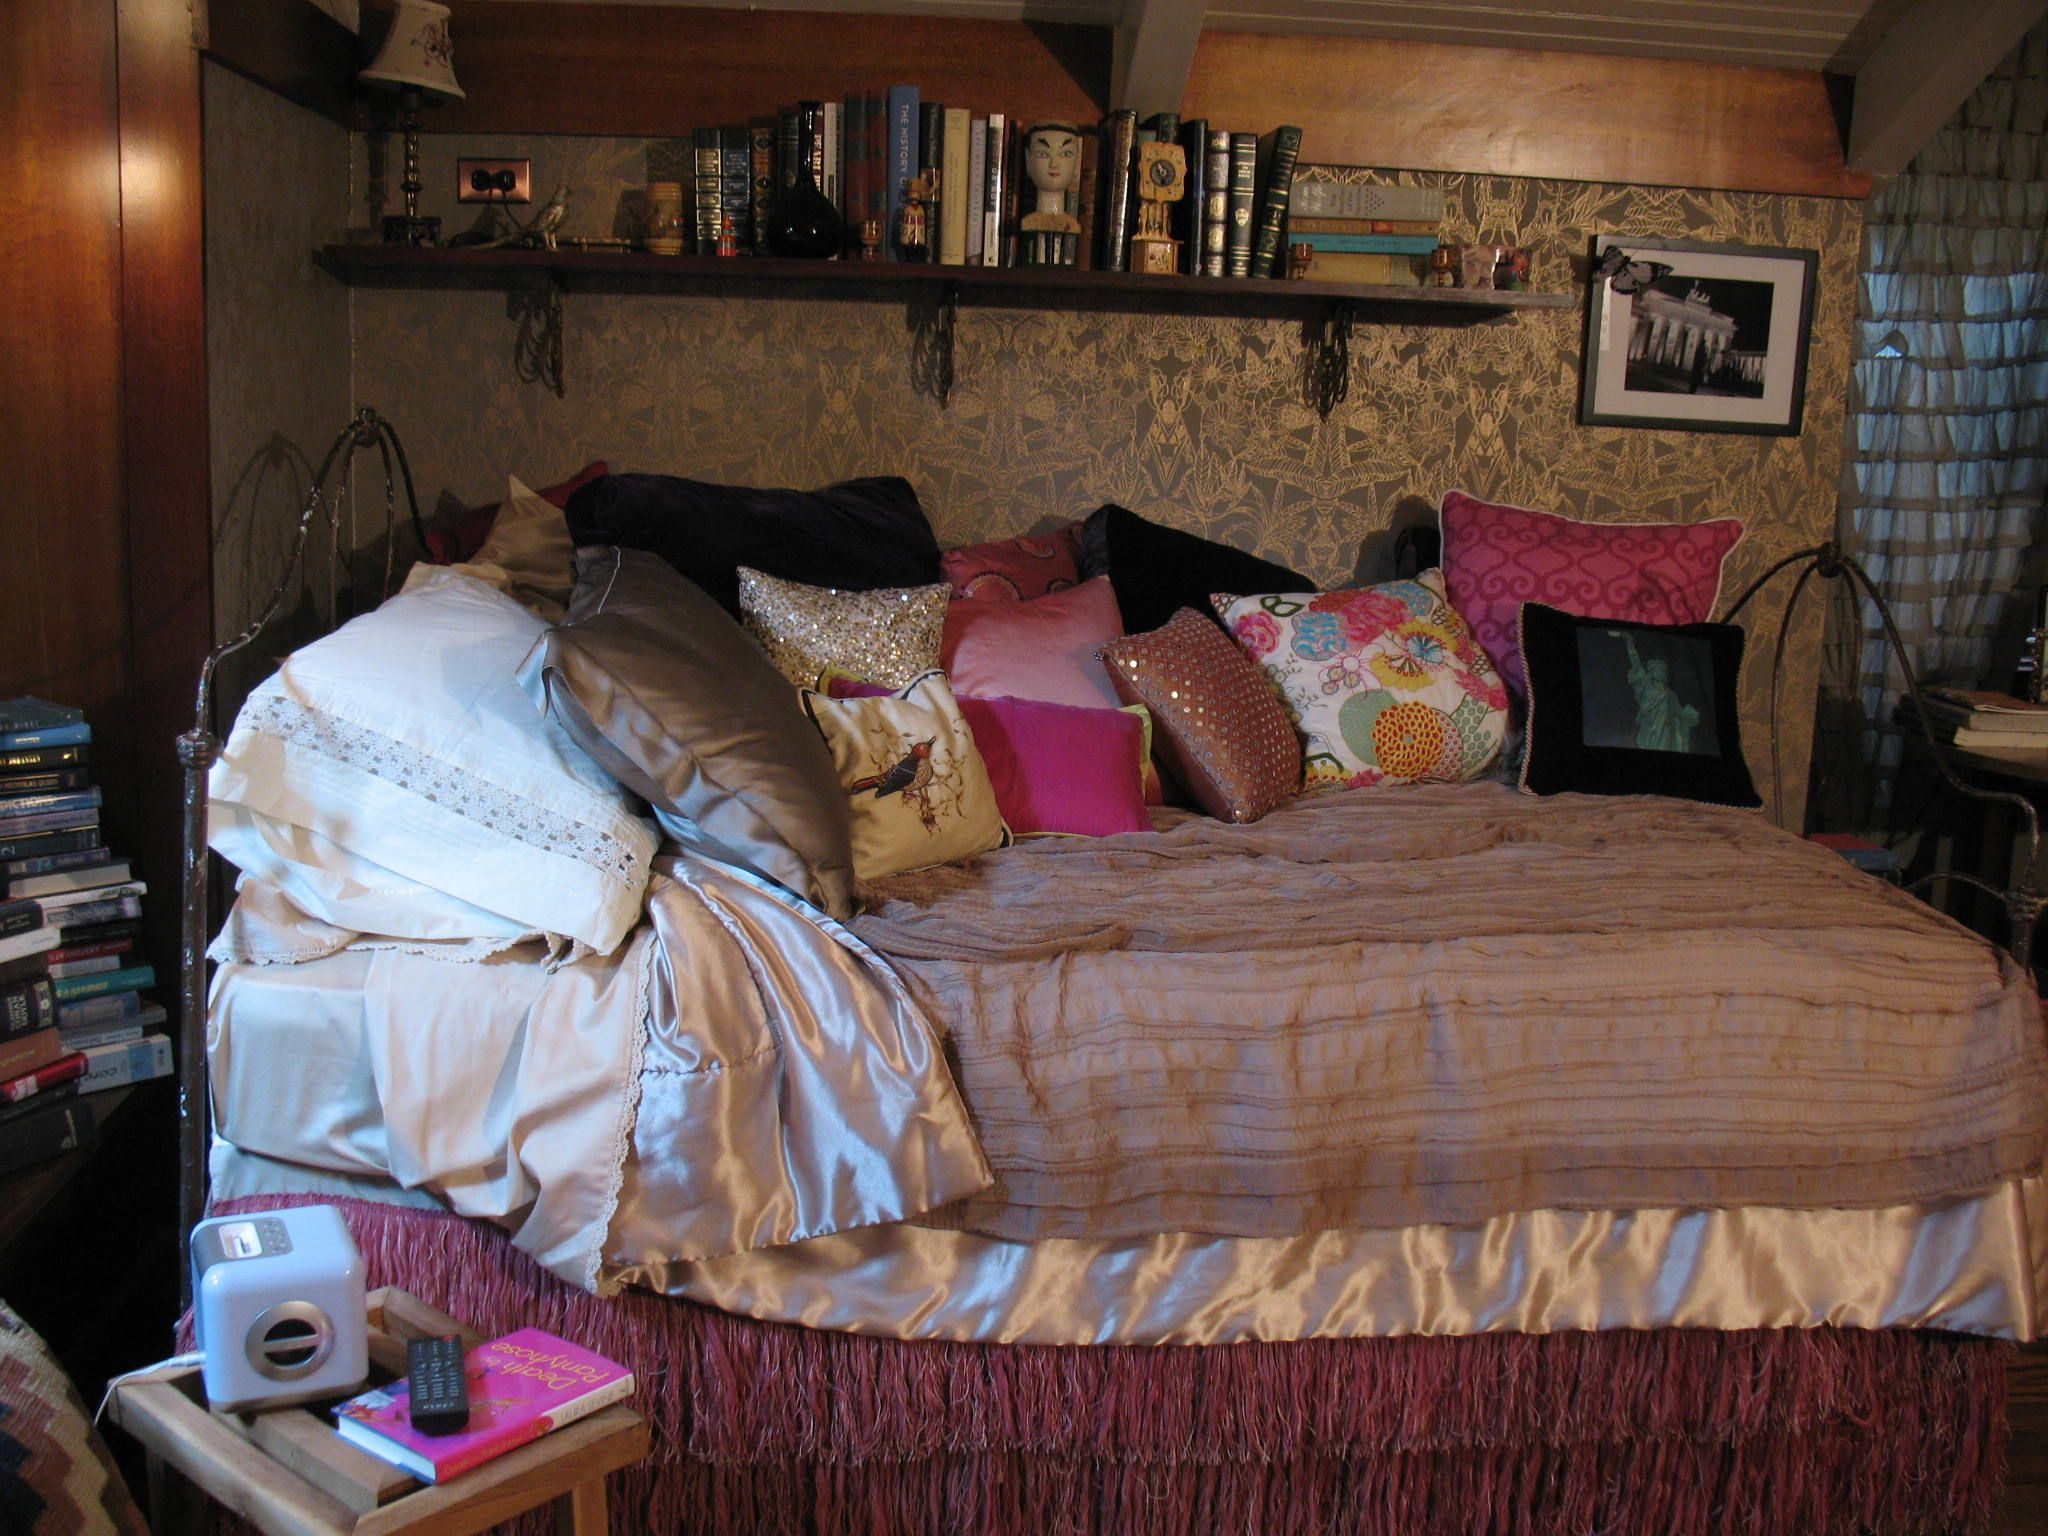 So Many Pillows Which One Is Your Favorite Pretty Little Liars Aria Montgomery Room Room Inspo Home Decor